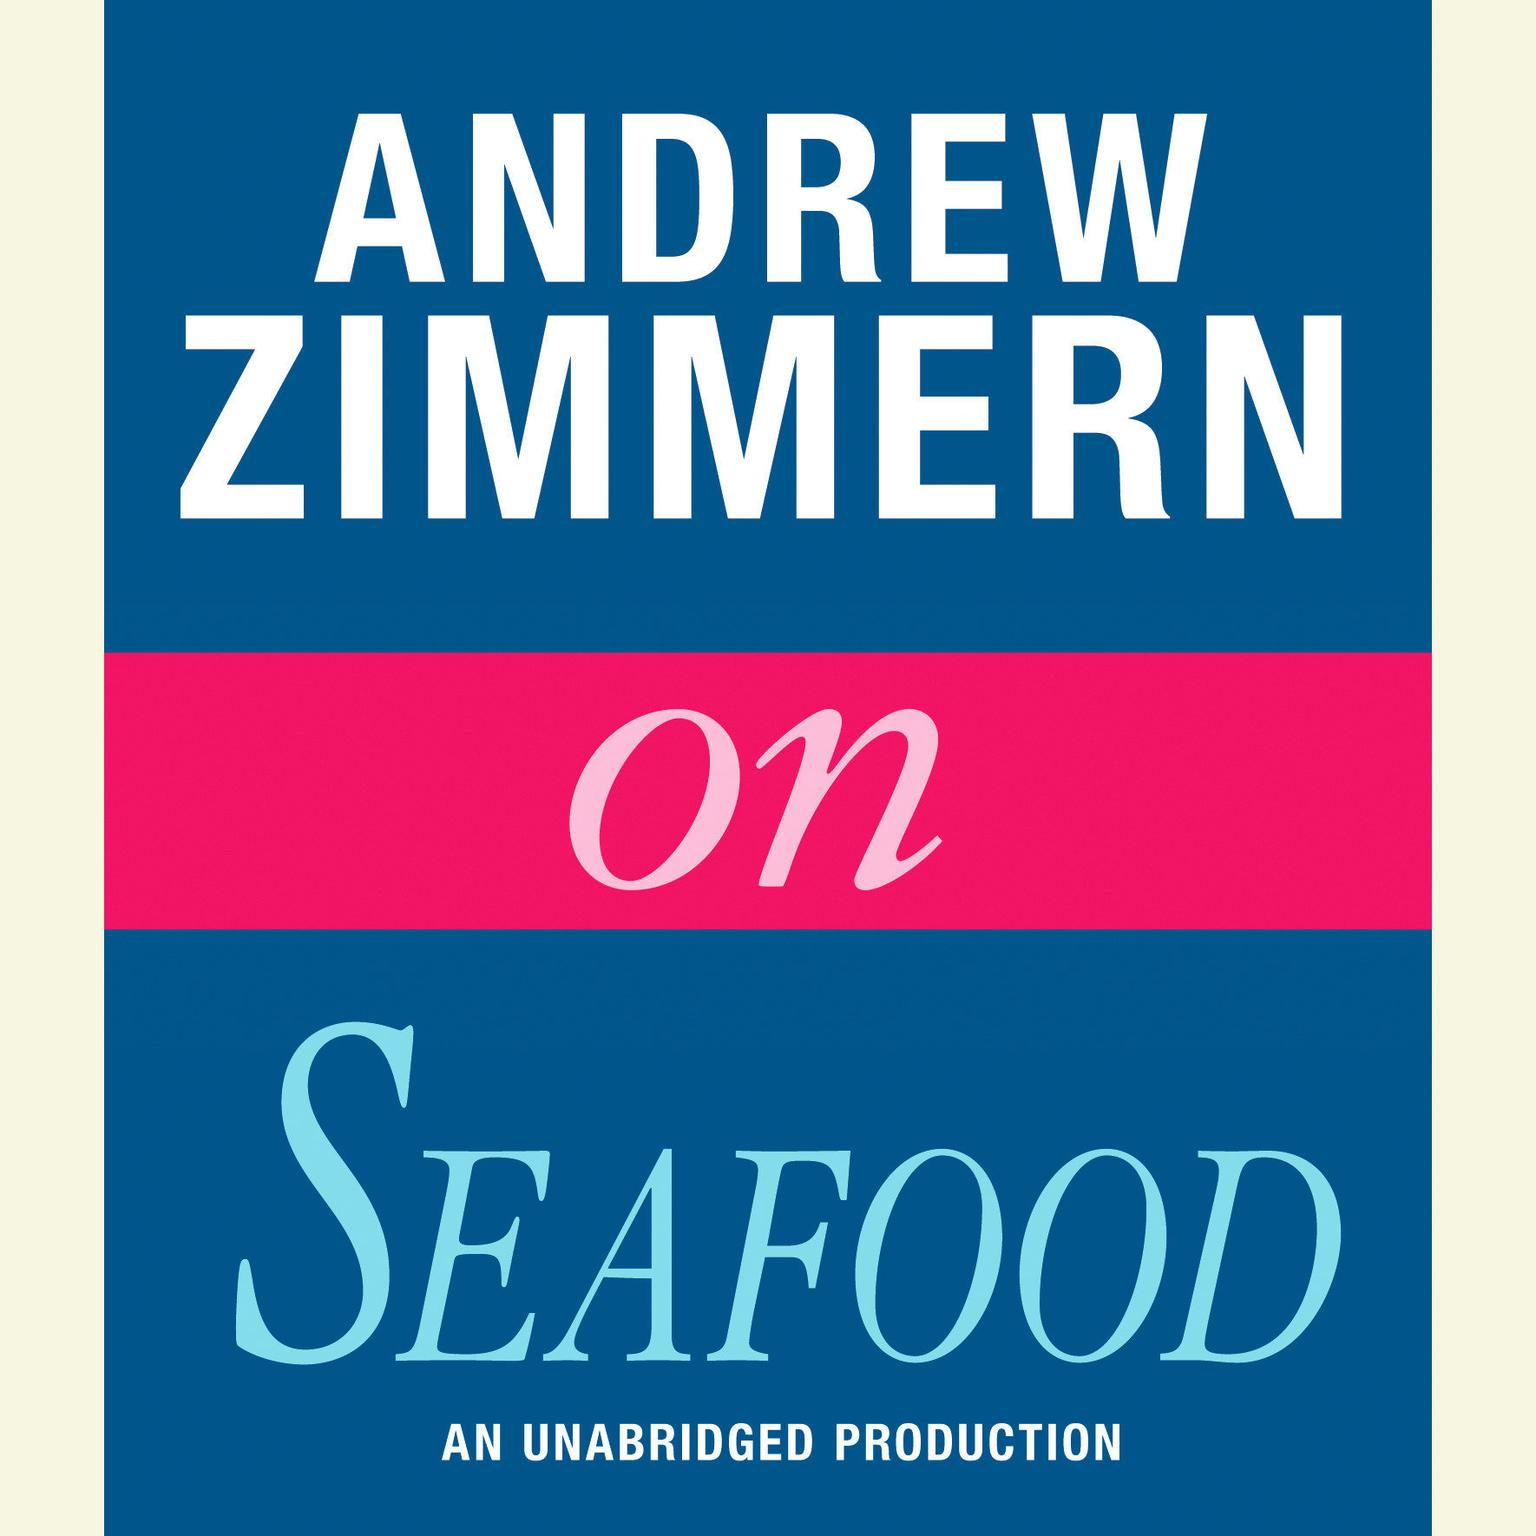 Printable Andrew Zimmern on Seafood Audiobook Cover Art